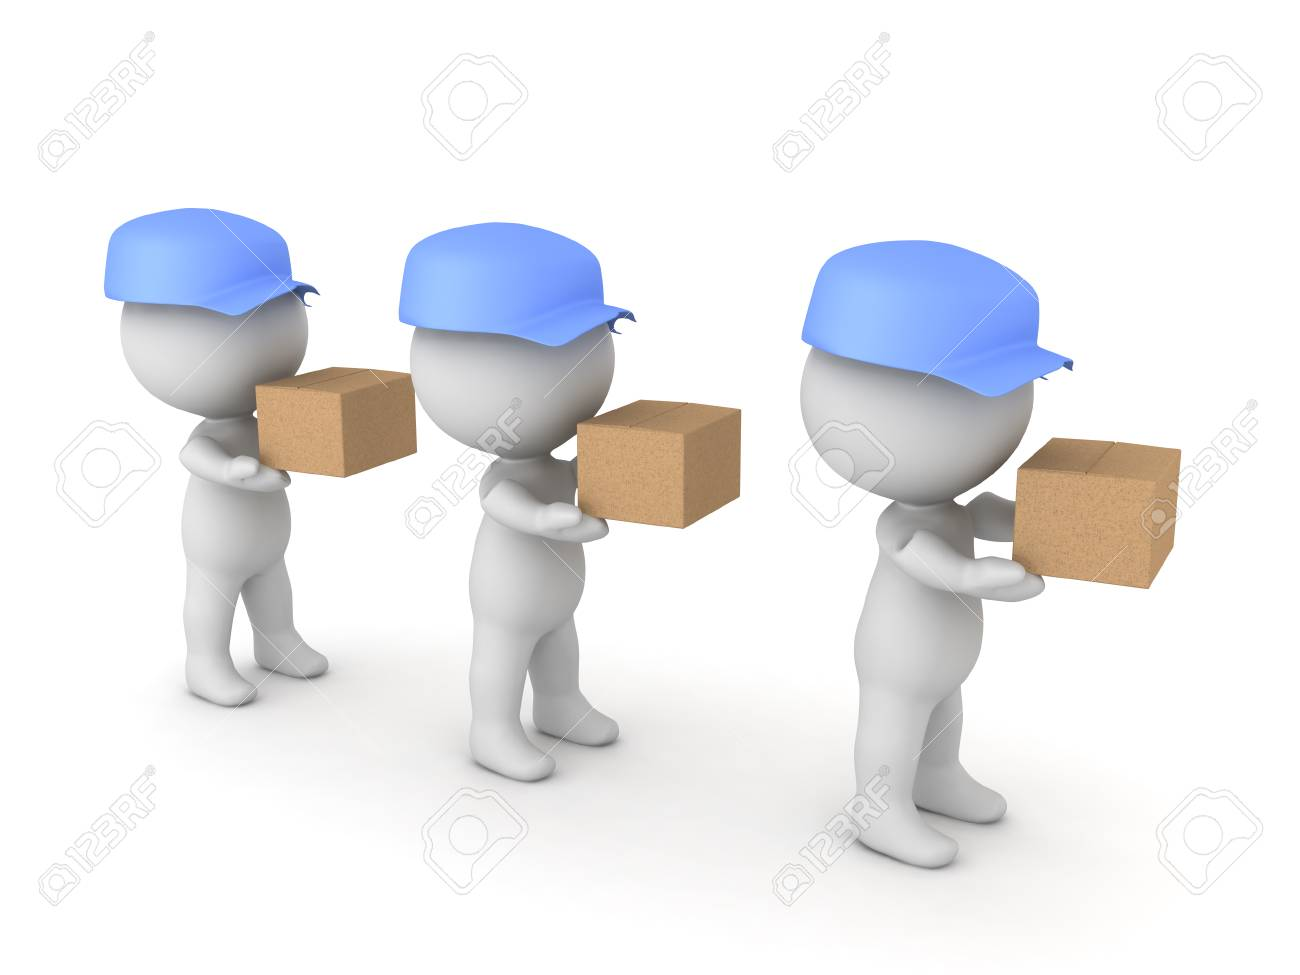 3D illustration of many deliverymen holding packages. They are holding cardboard boxes. - 76663003